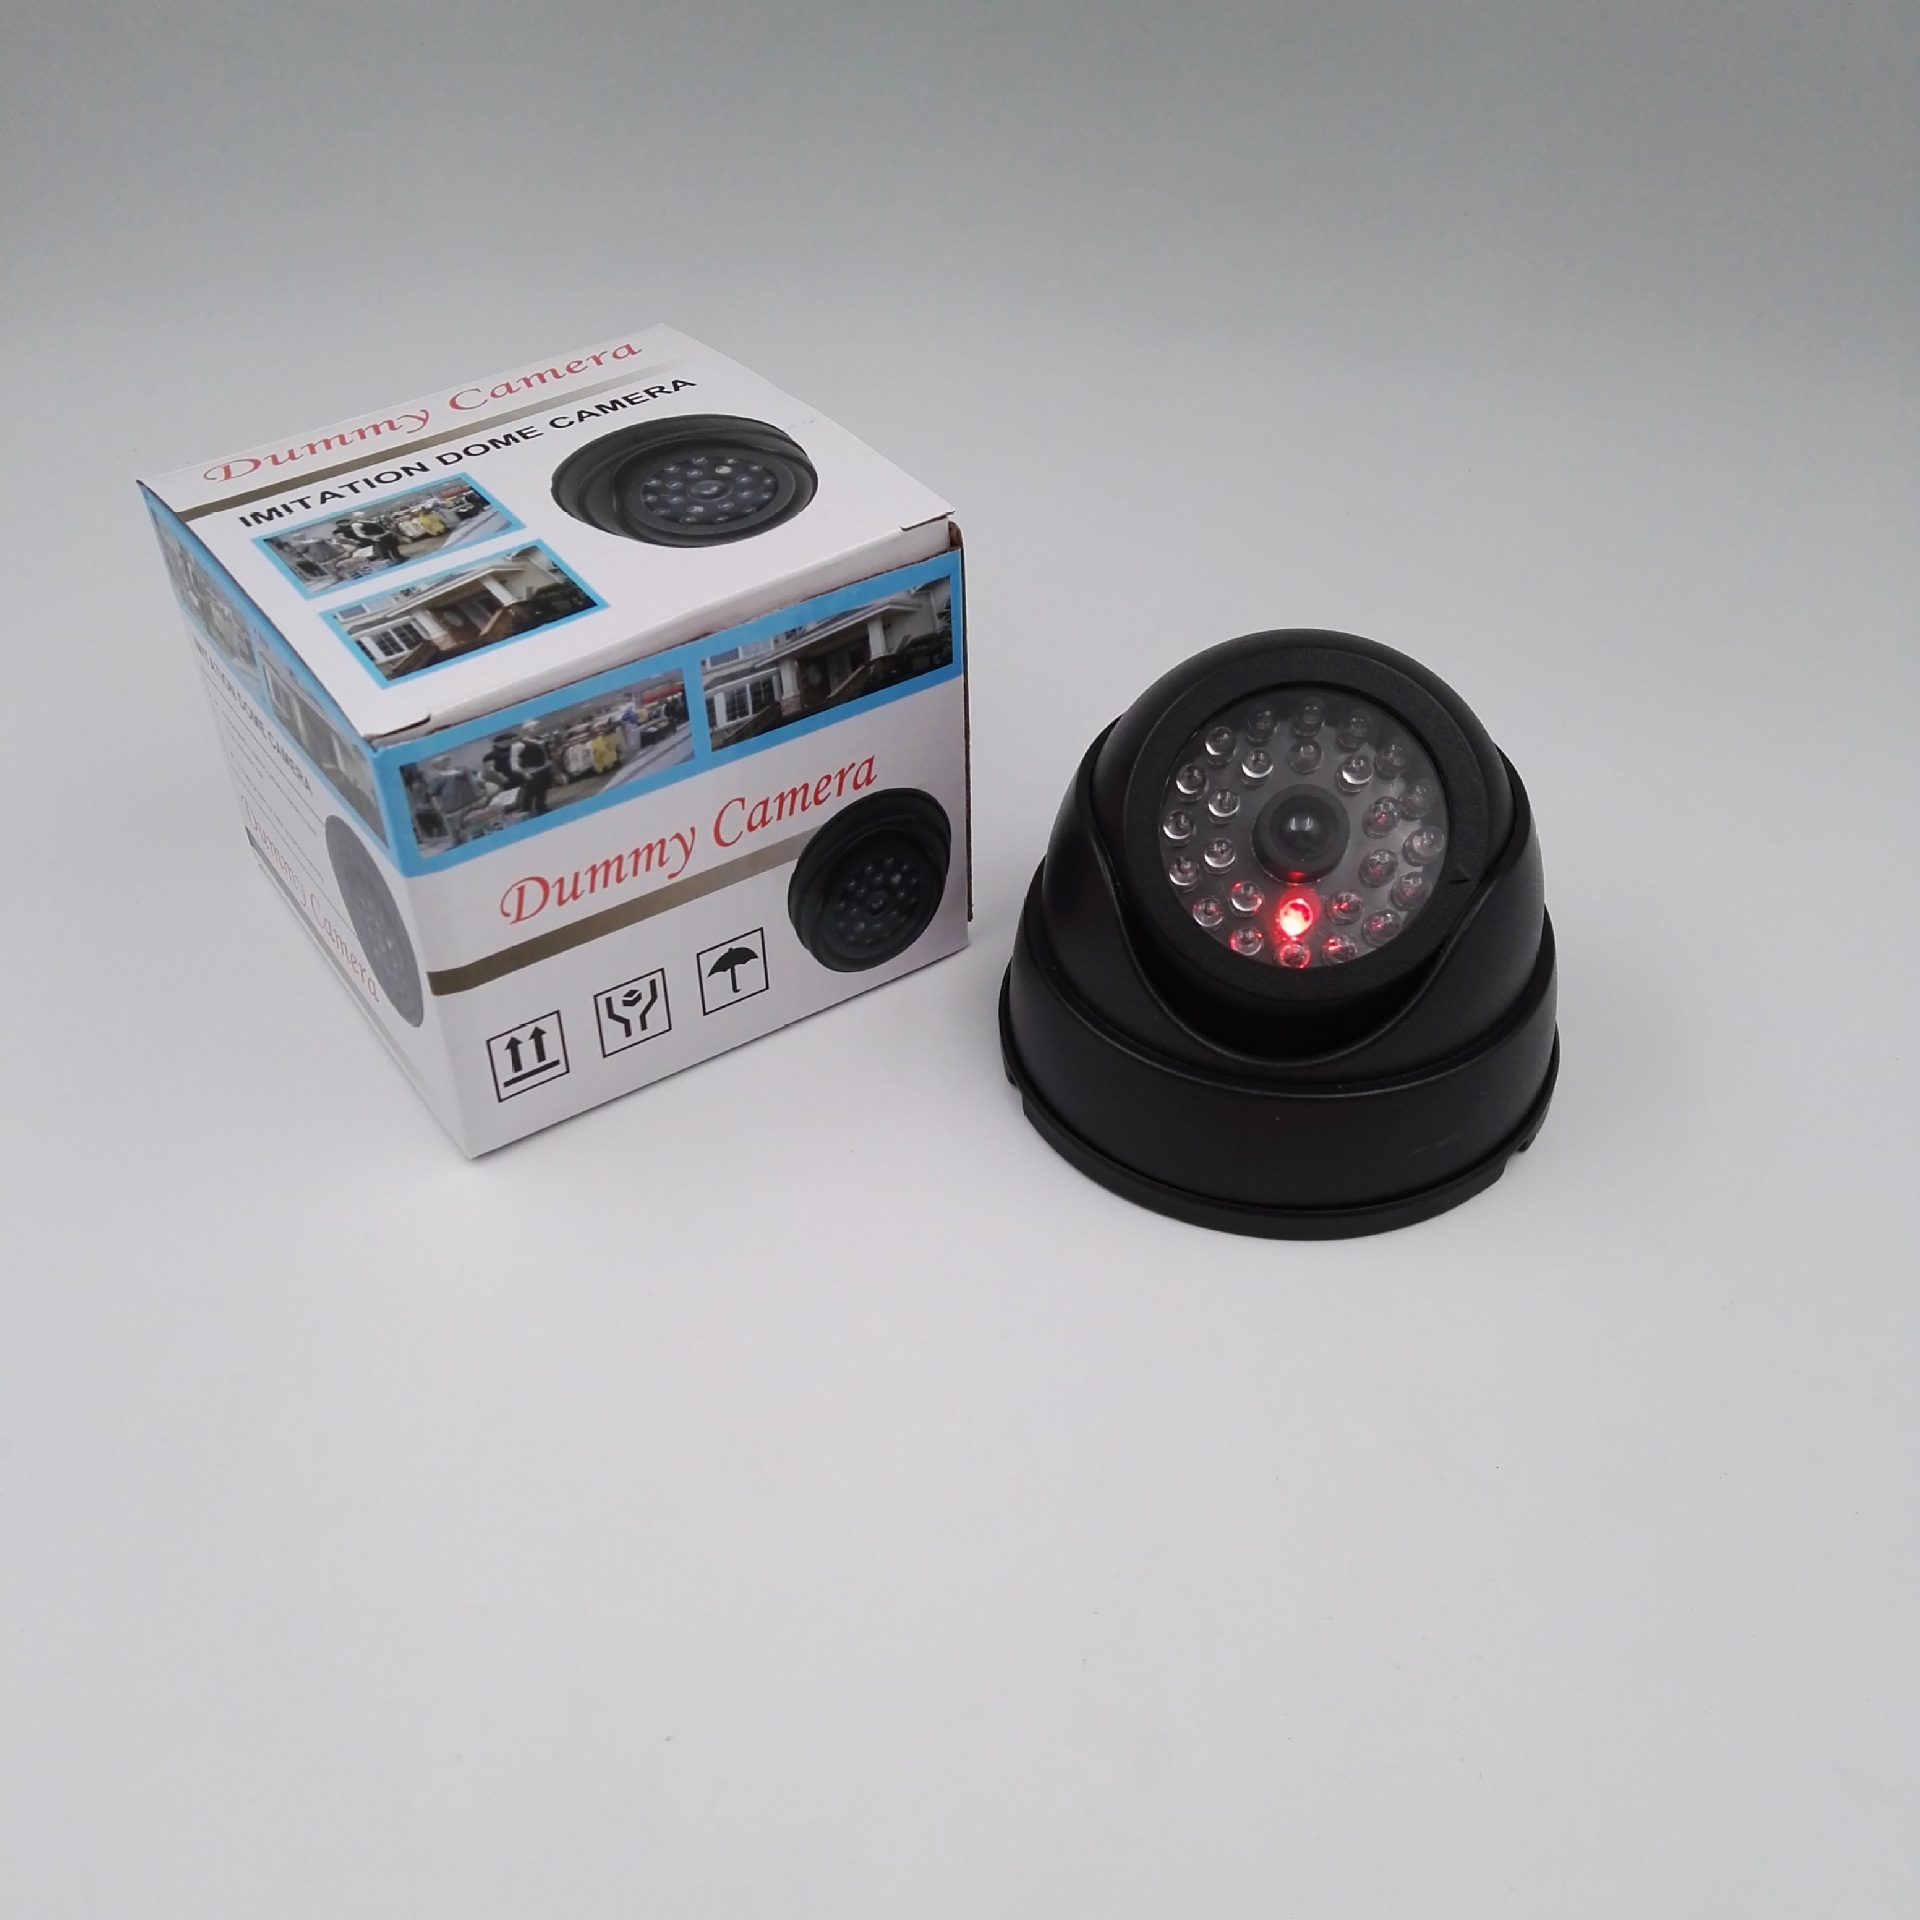 CCTV High Quality Conch Dummy Round High Simulation Monitor Home Security Dummy Camera Black And White 2 Colors Optional